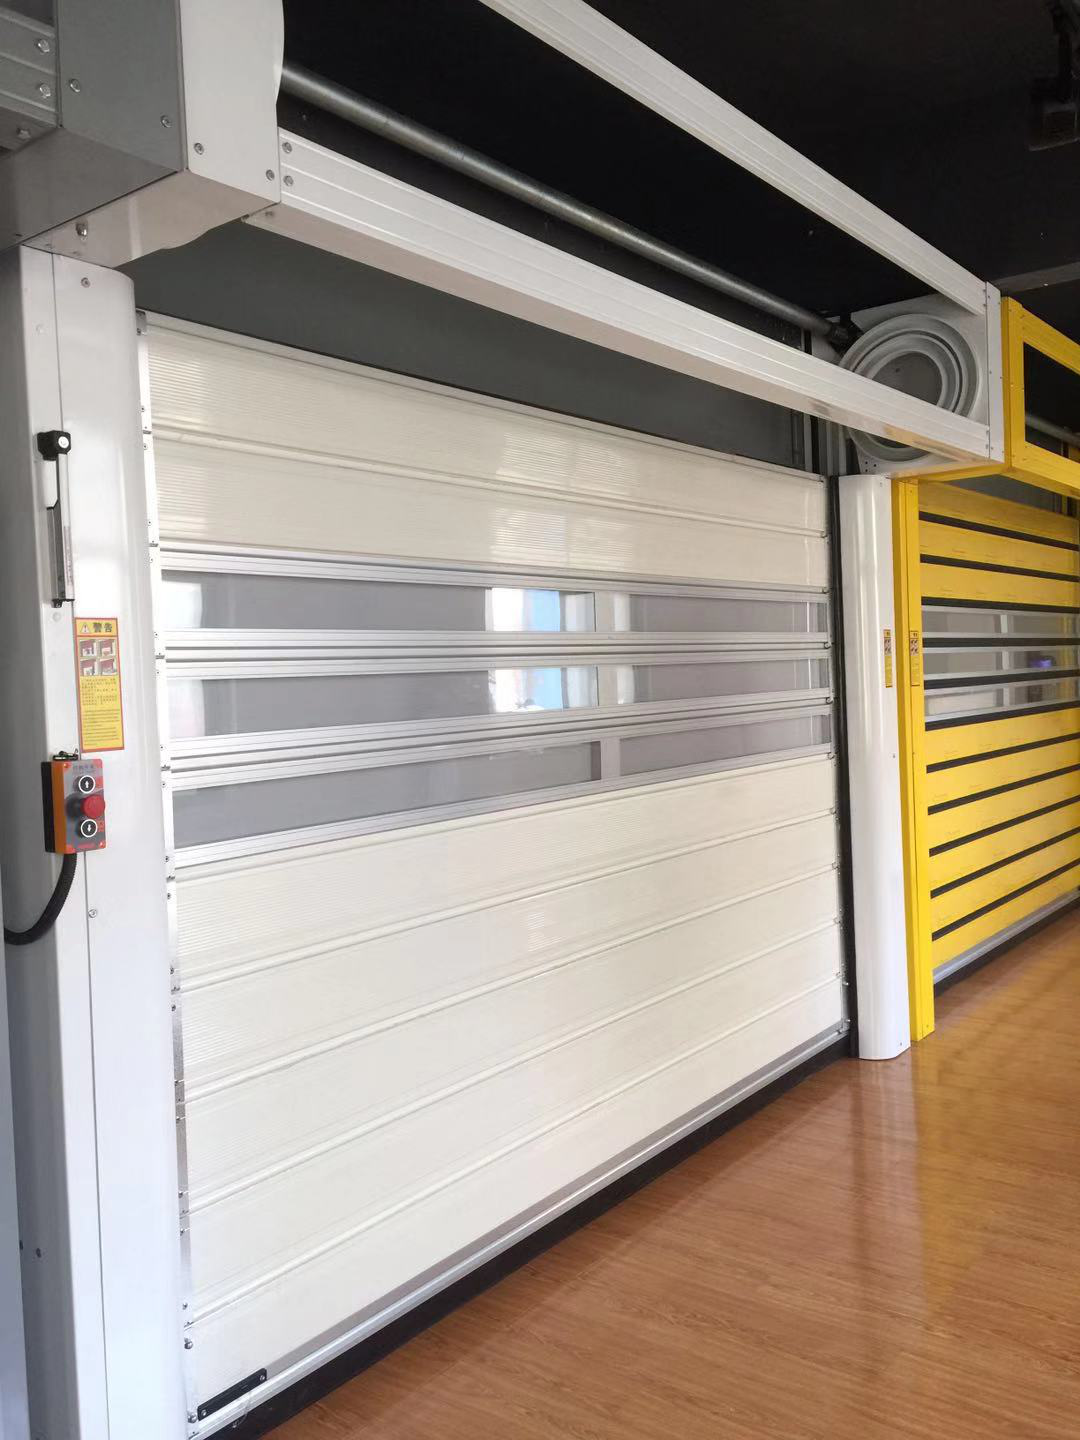 Why do you need a high speed spiral door?